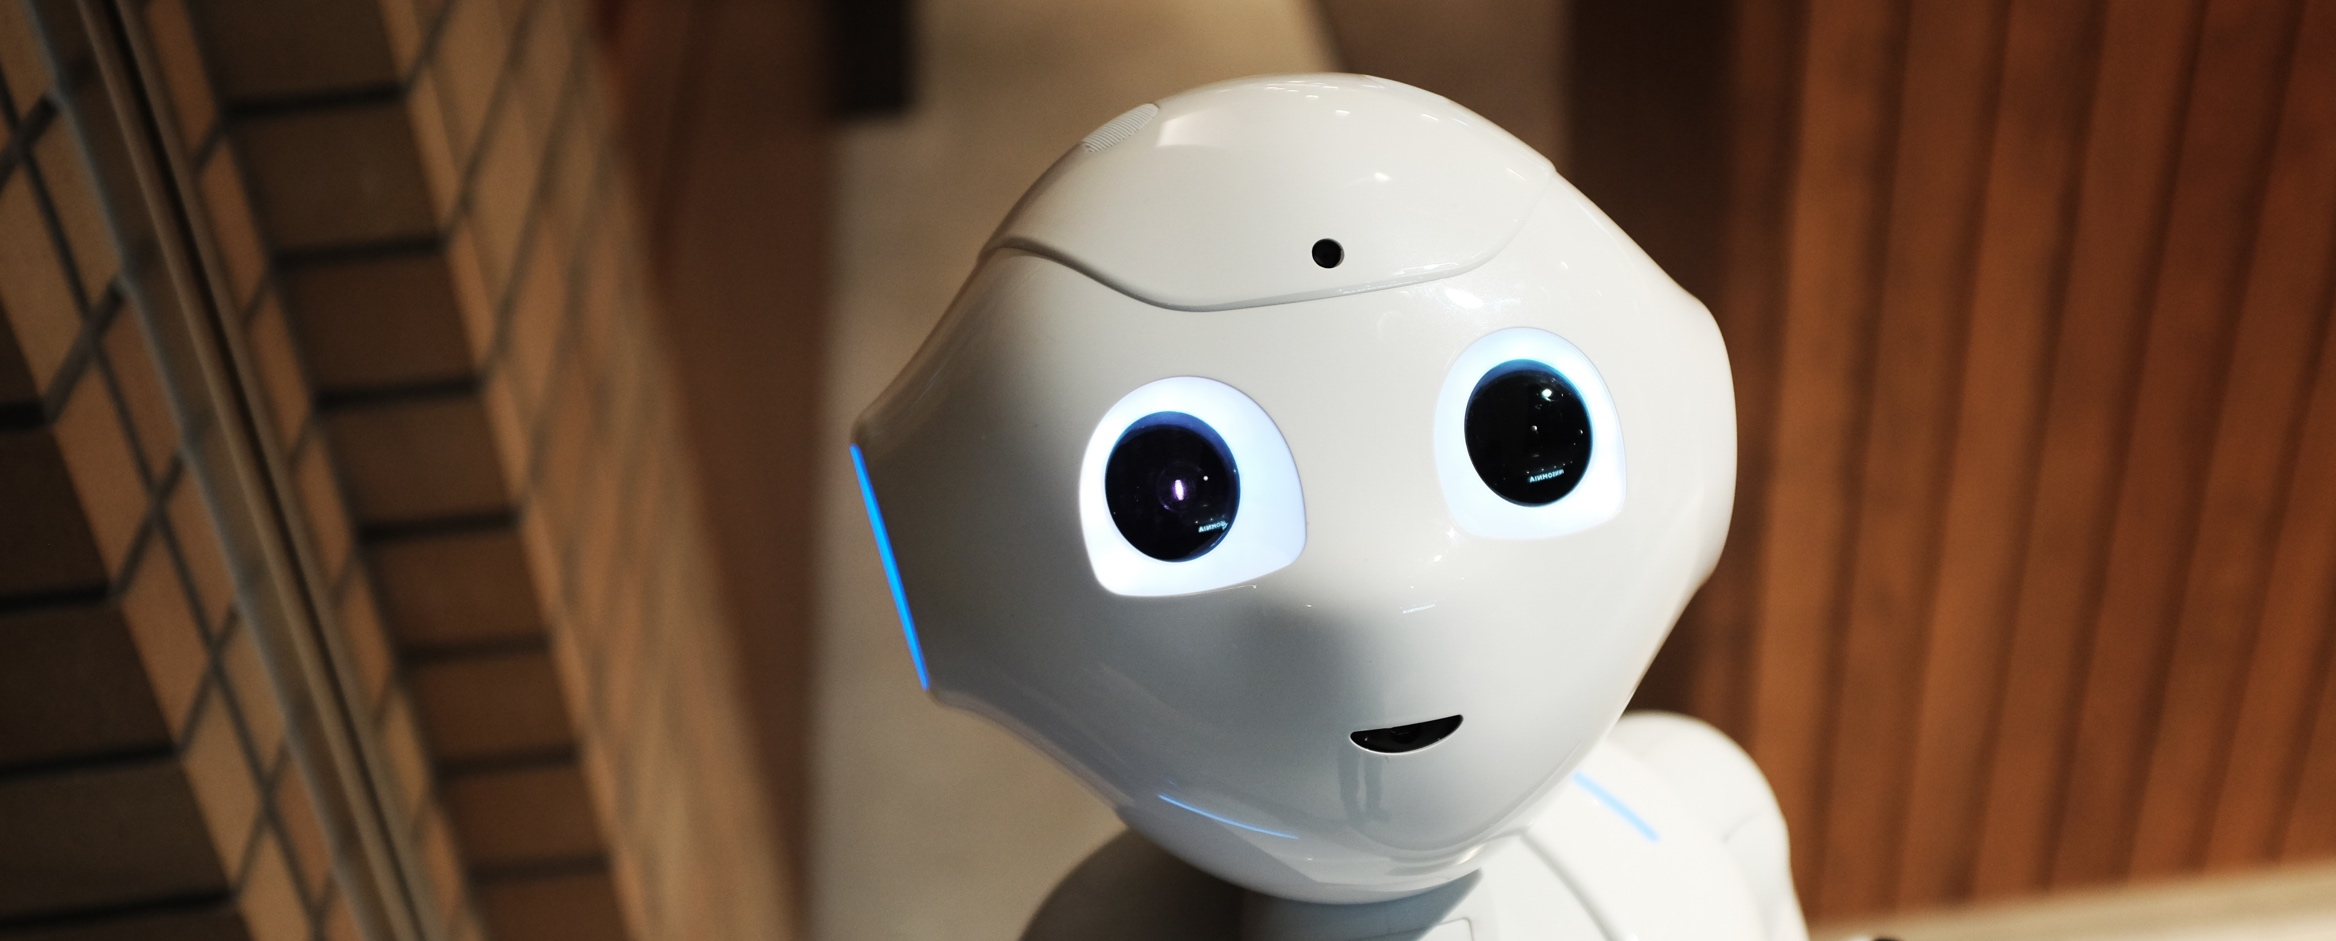 A human-like robot looks up at you